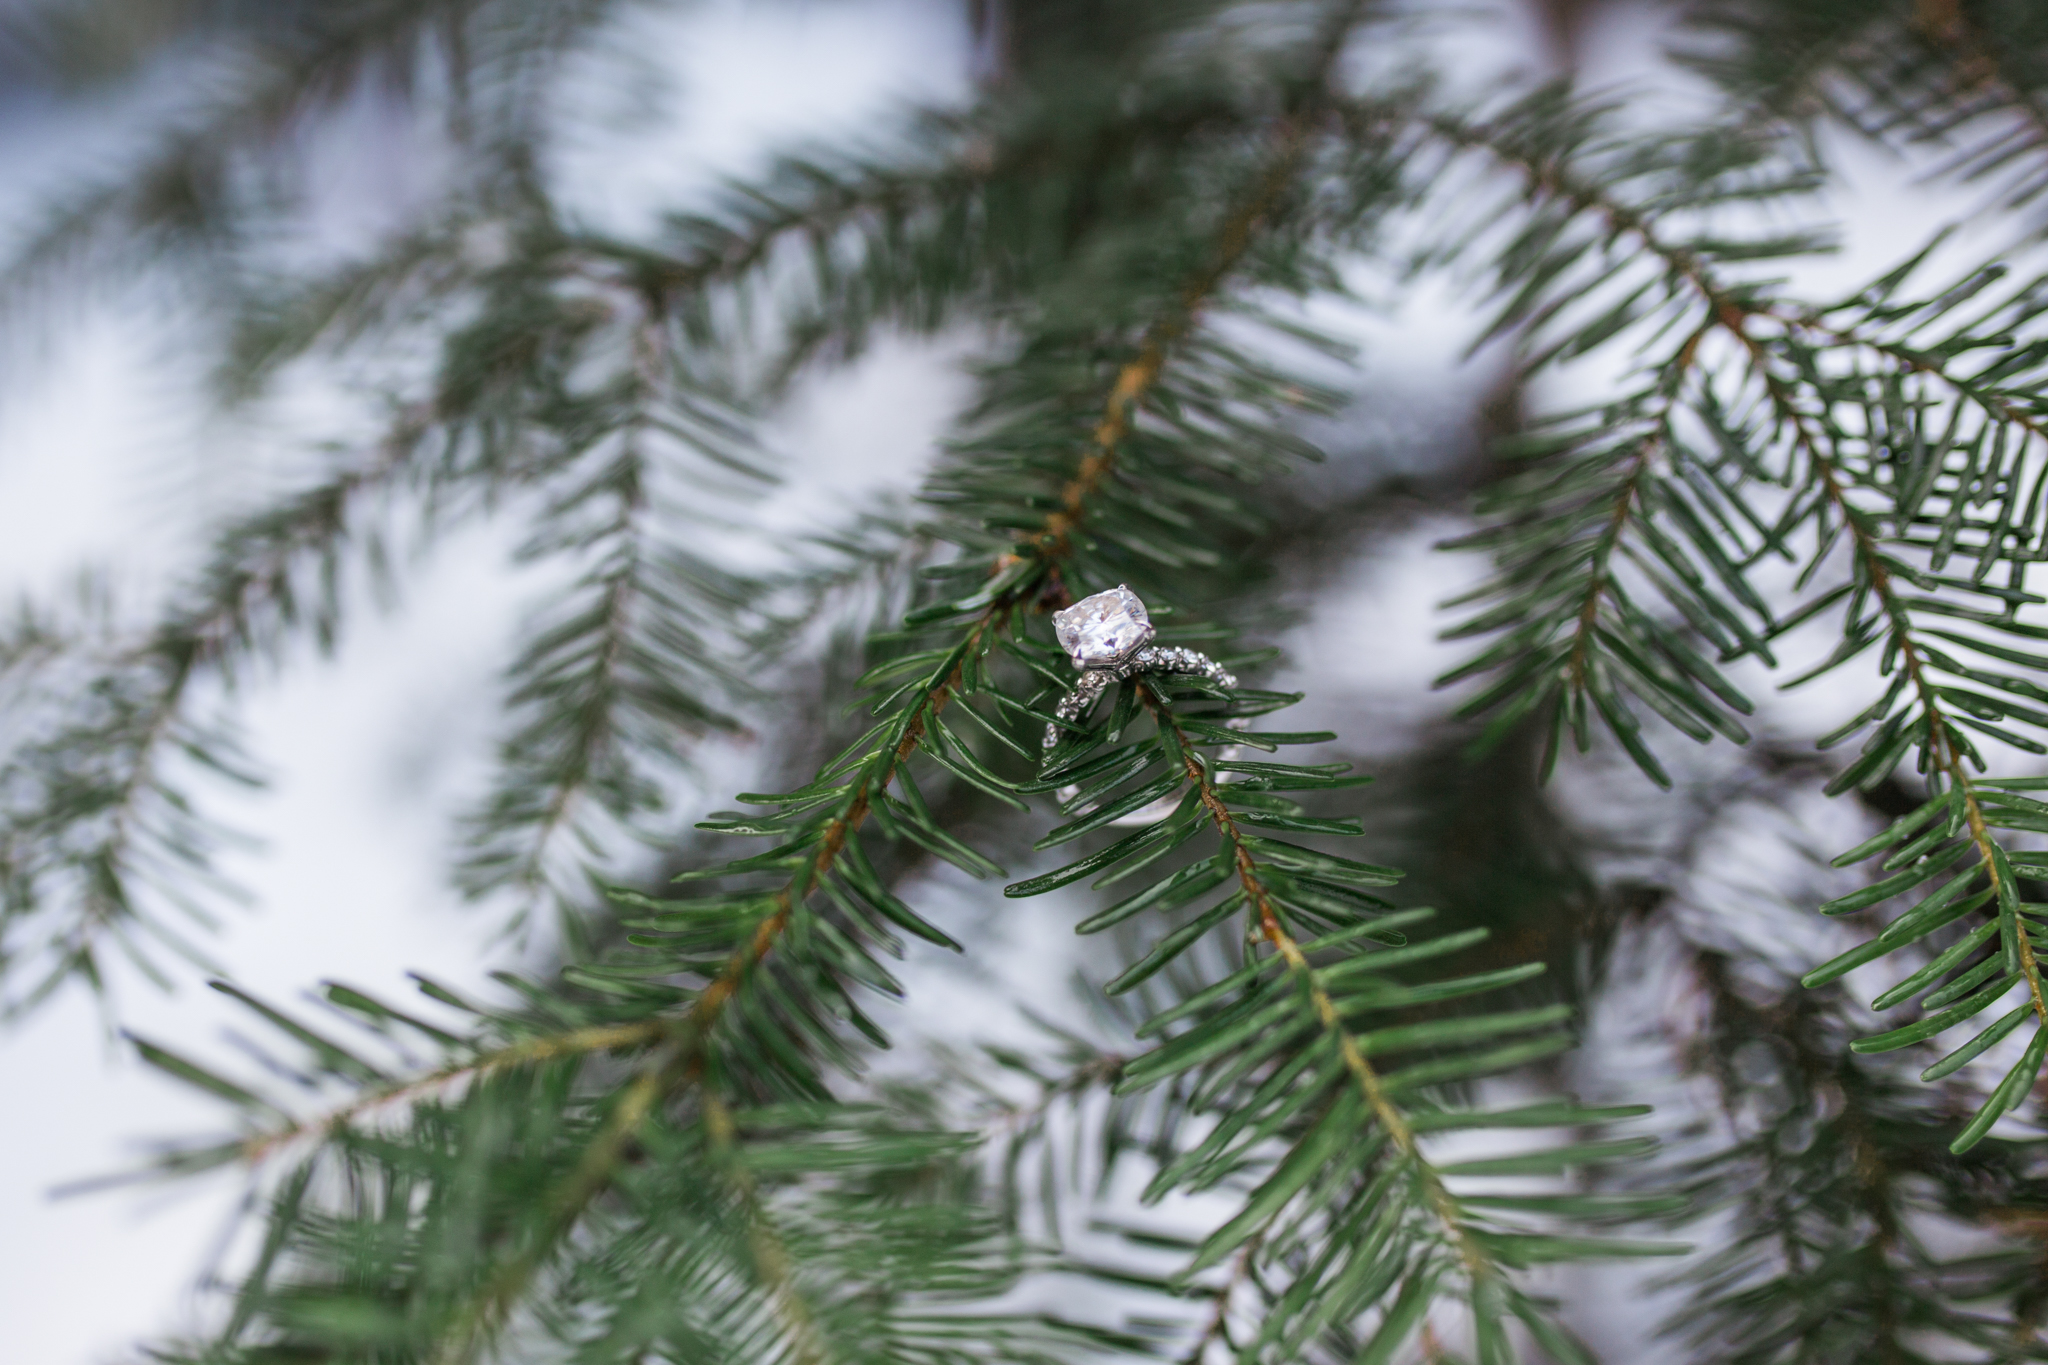 Trillium Lake Snowy Mt Hood, Oregon Engagement Session Engagement Ring Detail Photo.jpg